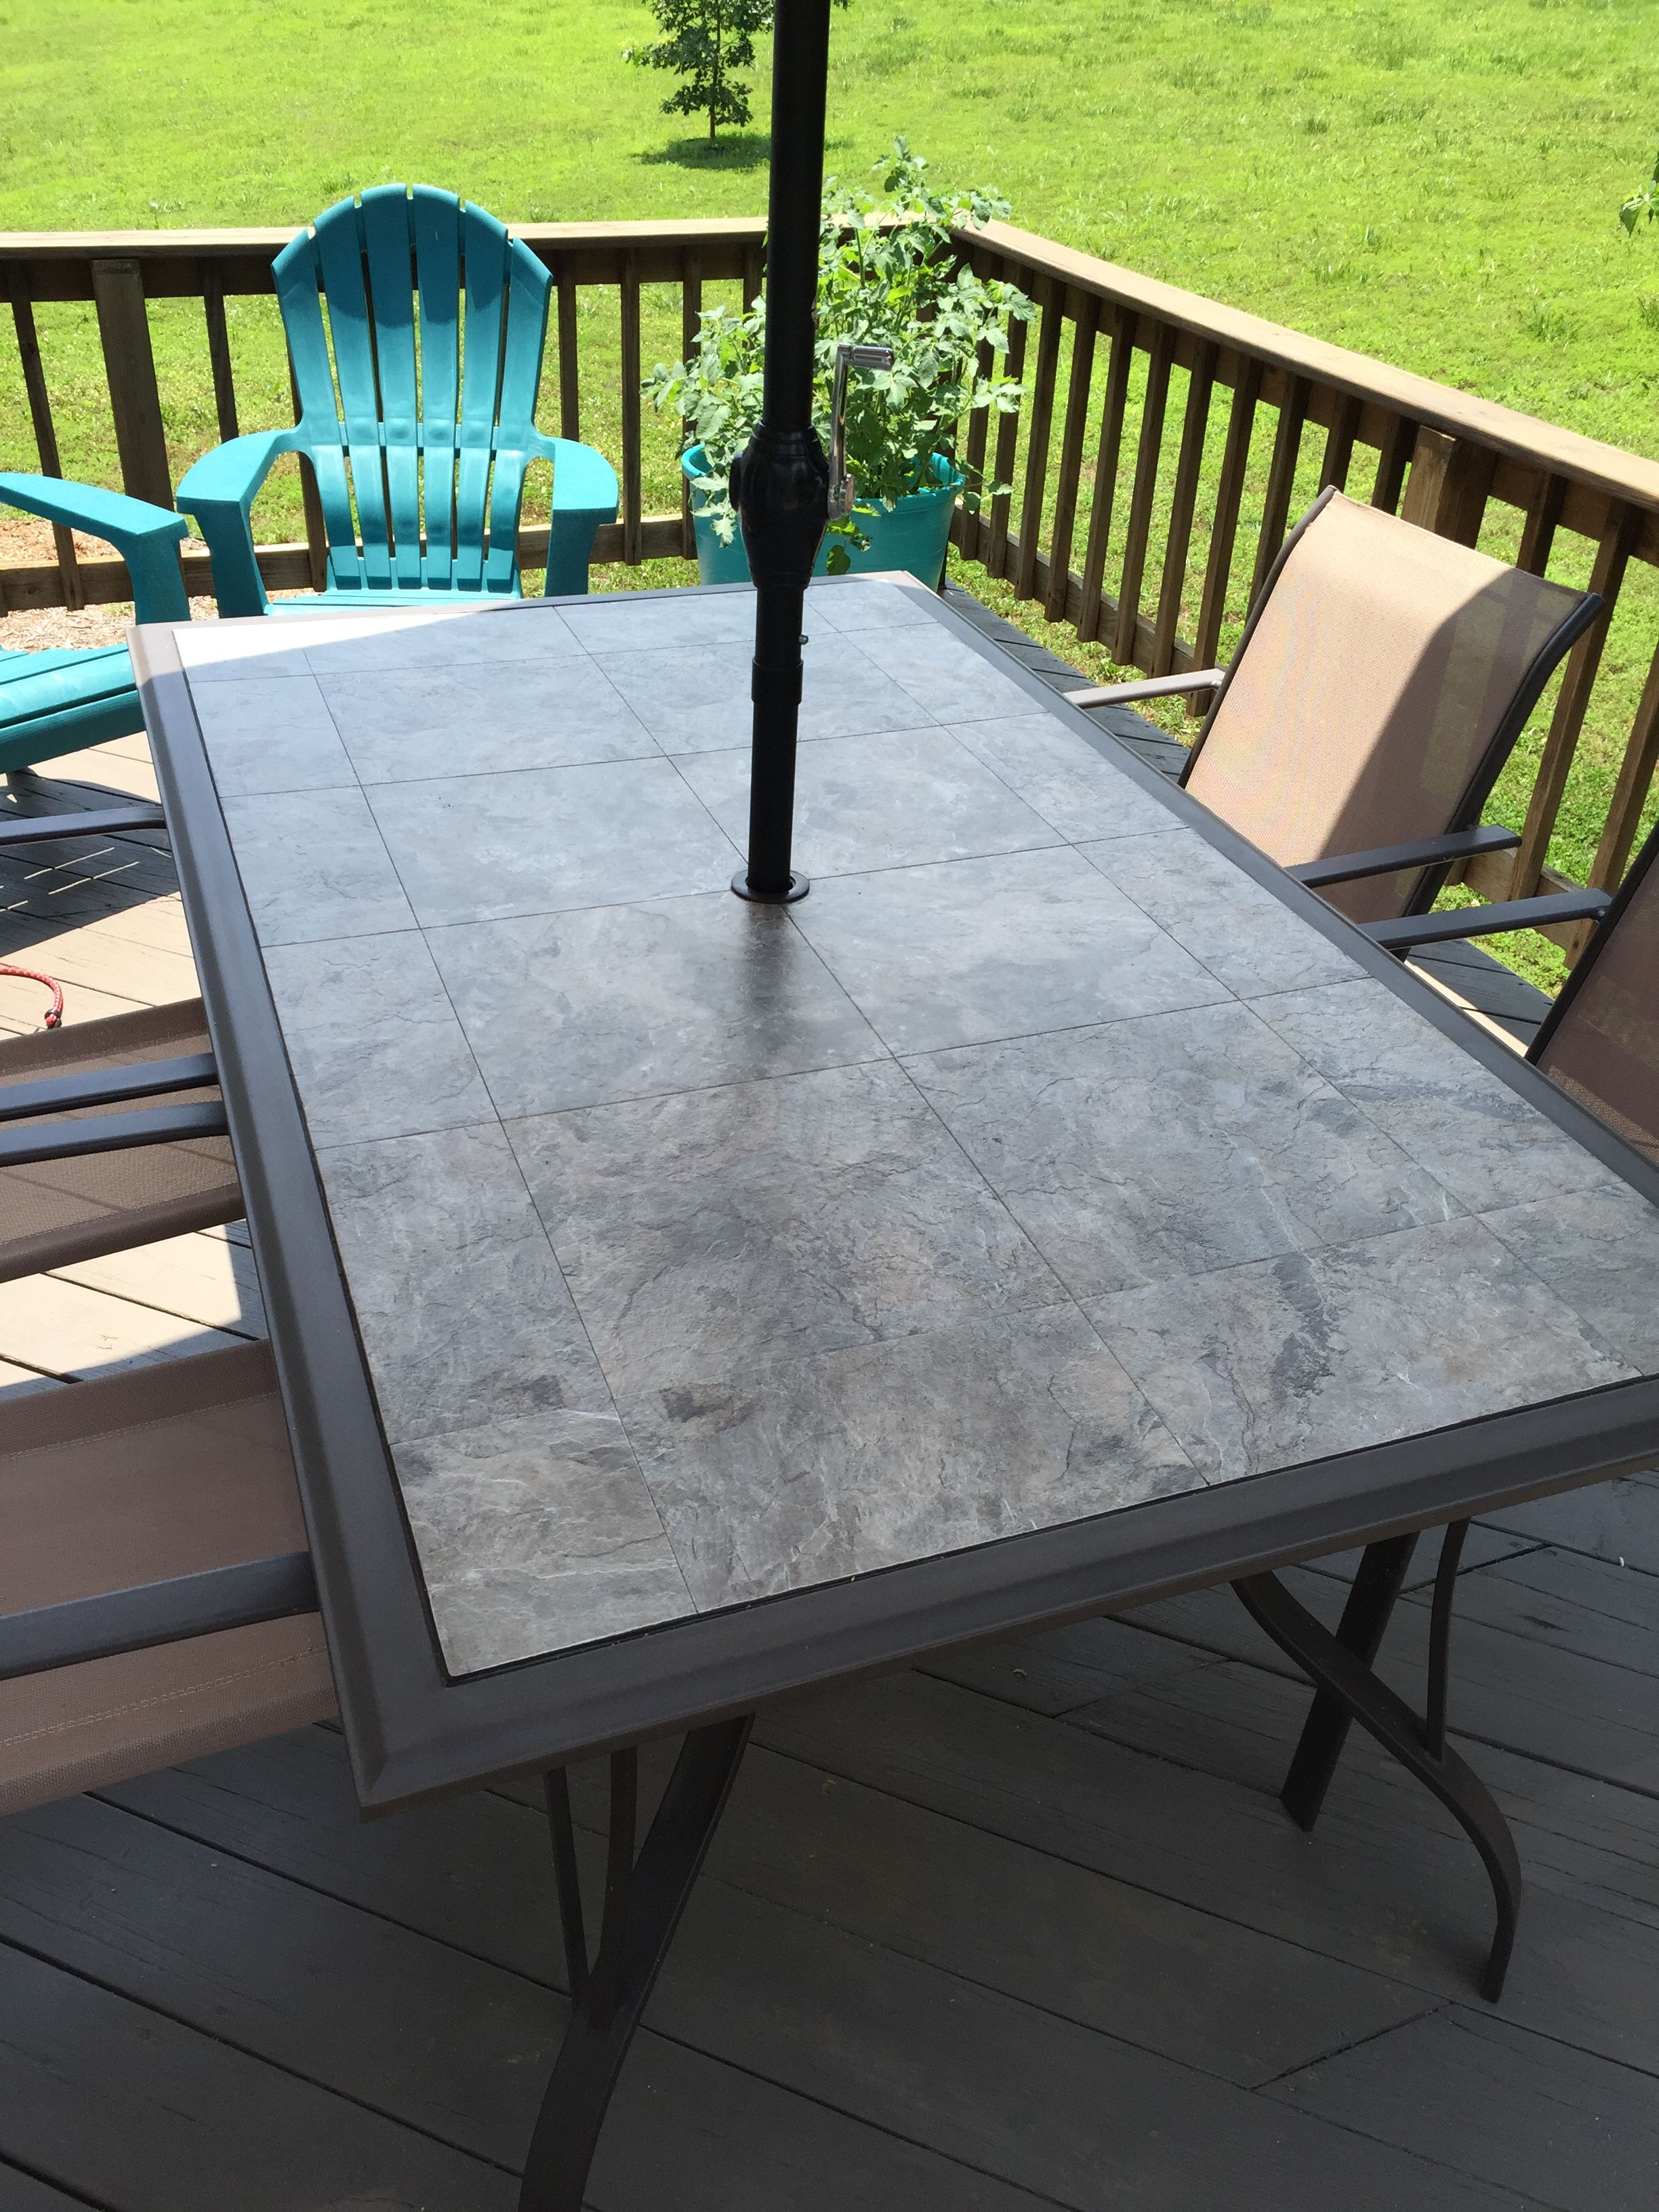 Exceptionnel The Glass Table Top Shattered In 1,000 Pieces When The Breeze Caught The  Umbrella! Replaced It With A Plywood Top And Armstrong Self Stick Vinyl  Tile.